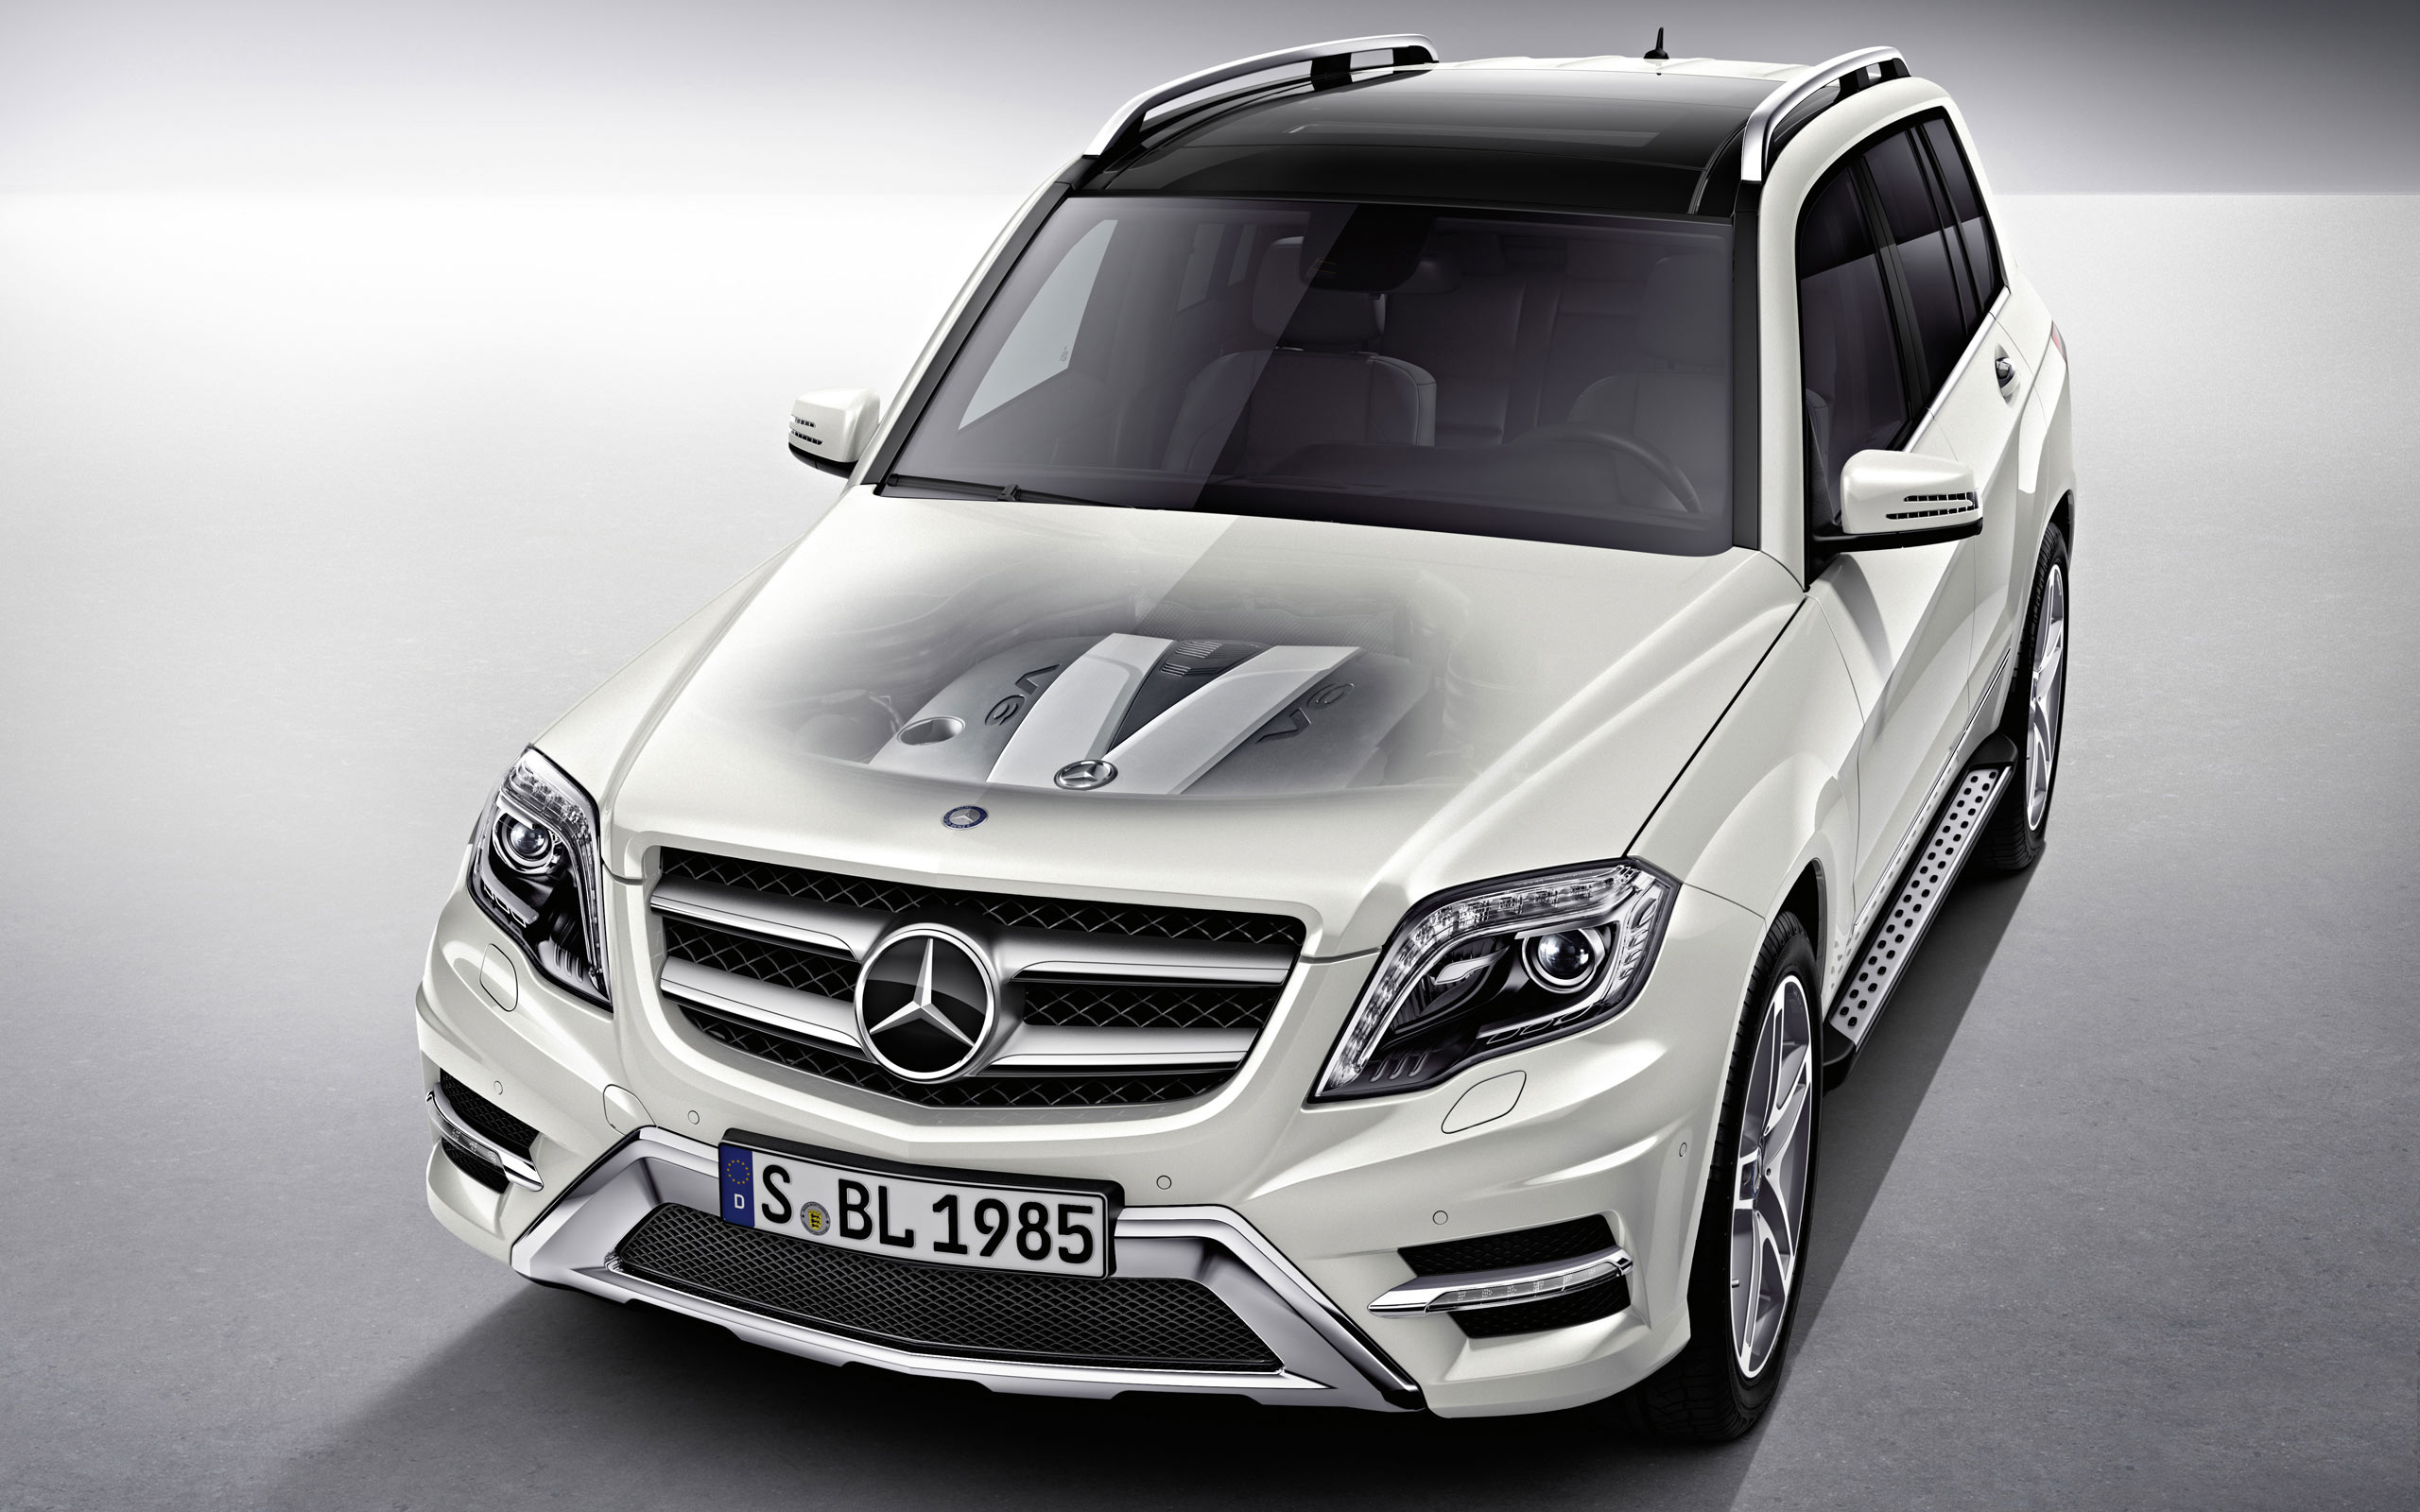 Mercedes Benz Glk 2012 Wallpaper Hd Car Wallpapers Id